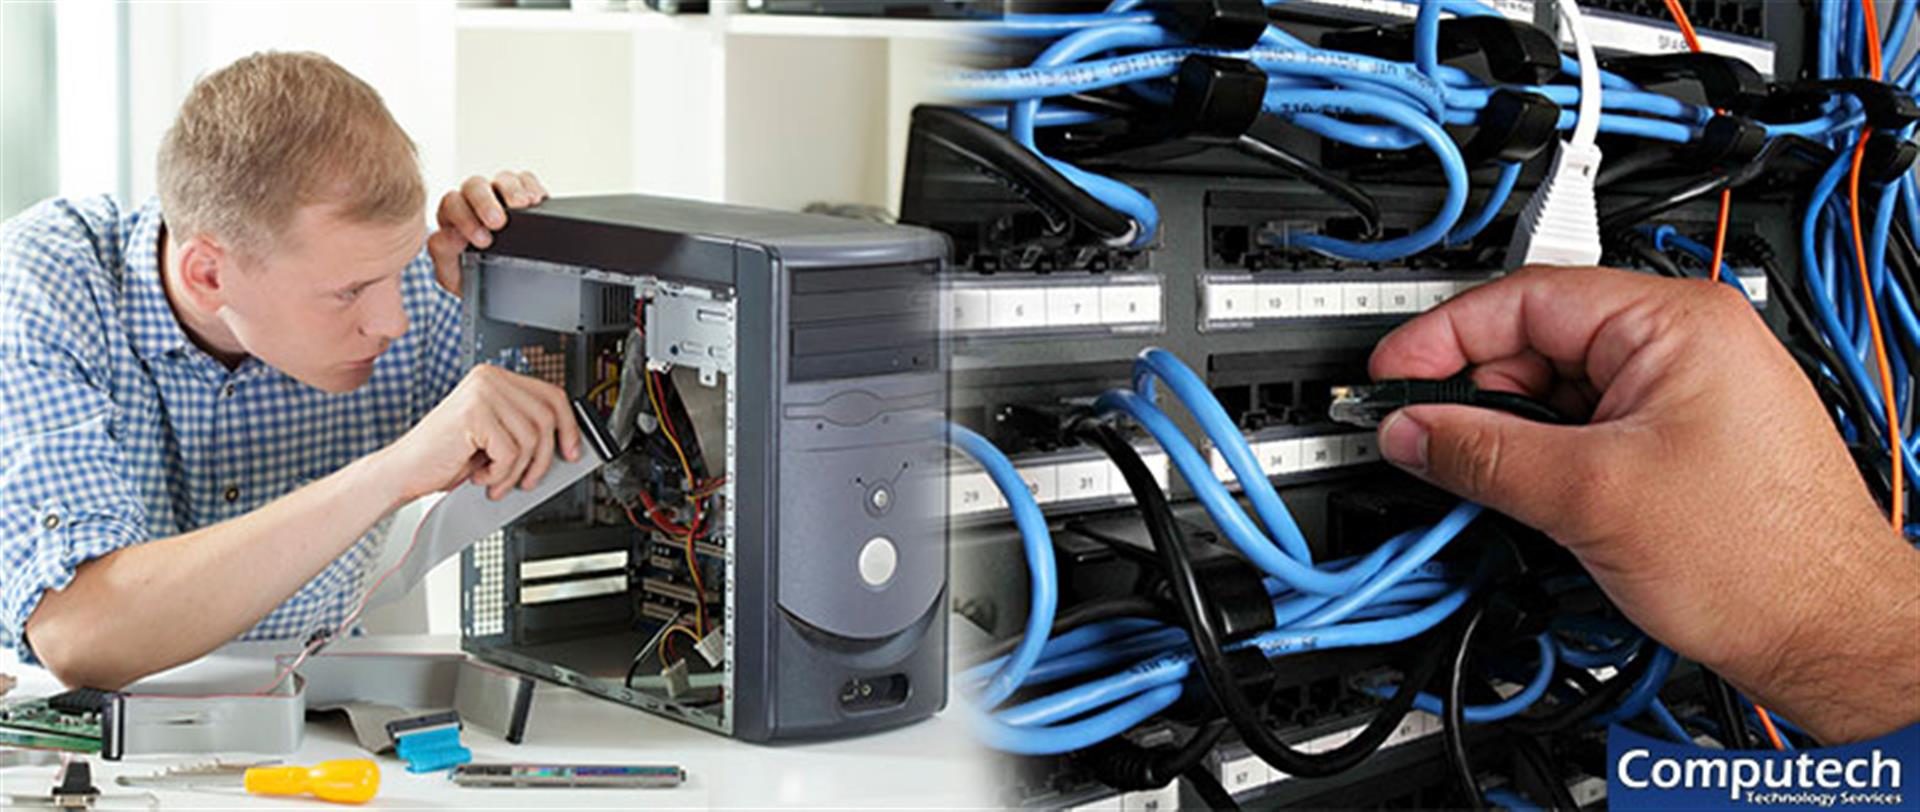 Brewton Alabama Onsite Computer PC & Printer Repair, Networks, Voice & Data Low Voltage Cabling Services